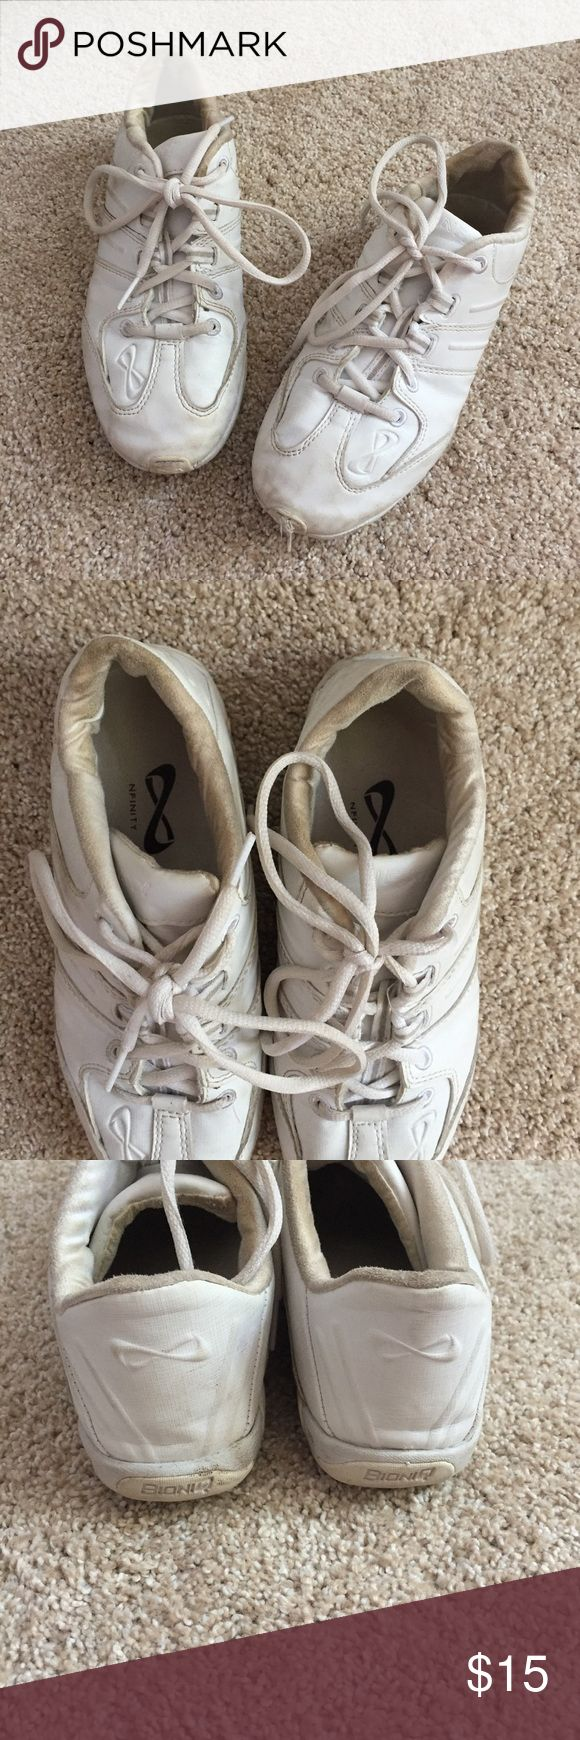 Infinity Cheerleading Shoes Definitely worn but still have life!! Just needs some cleaning and love. Feel free to make an offer!! Shoes Sneakers